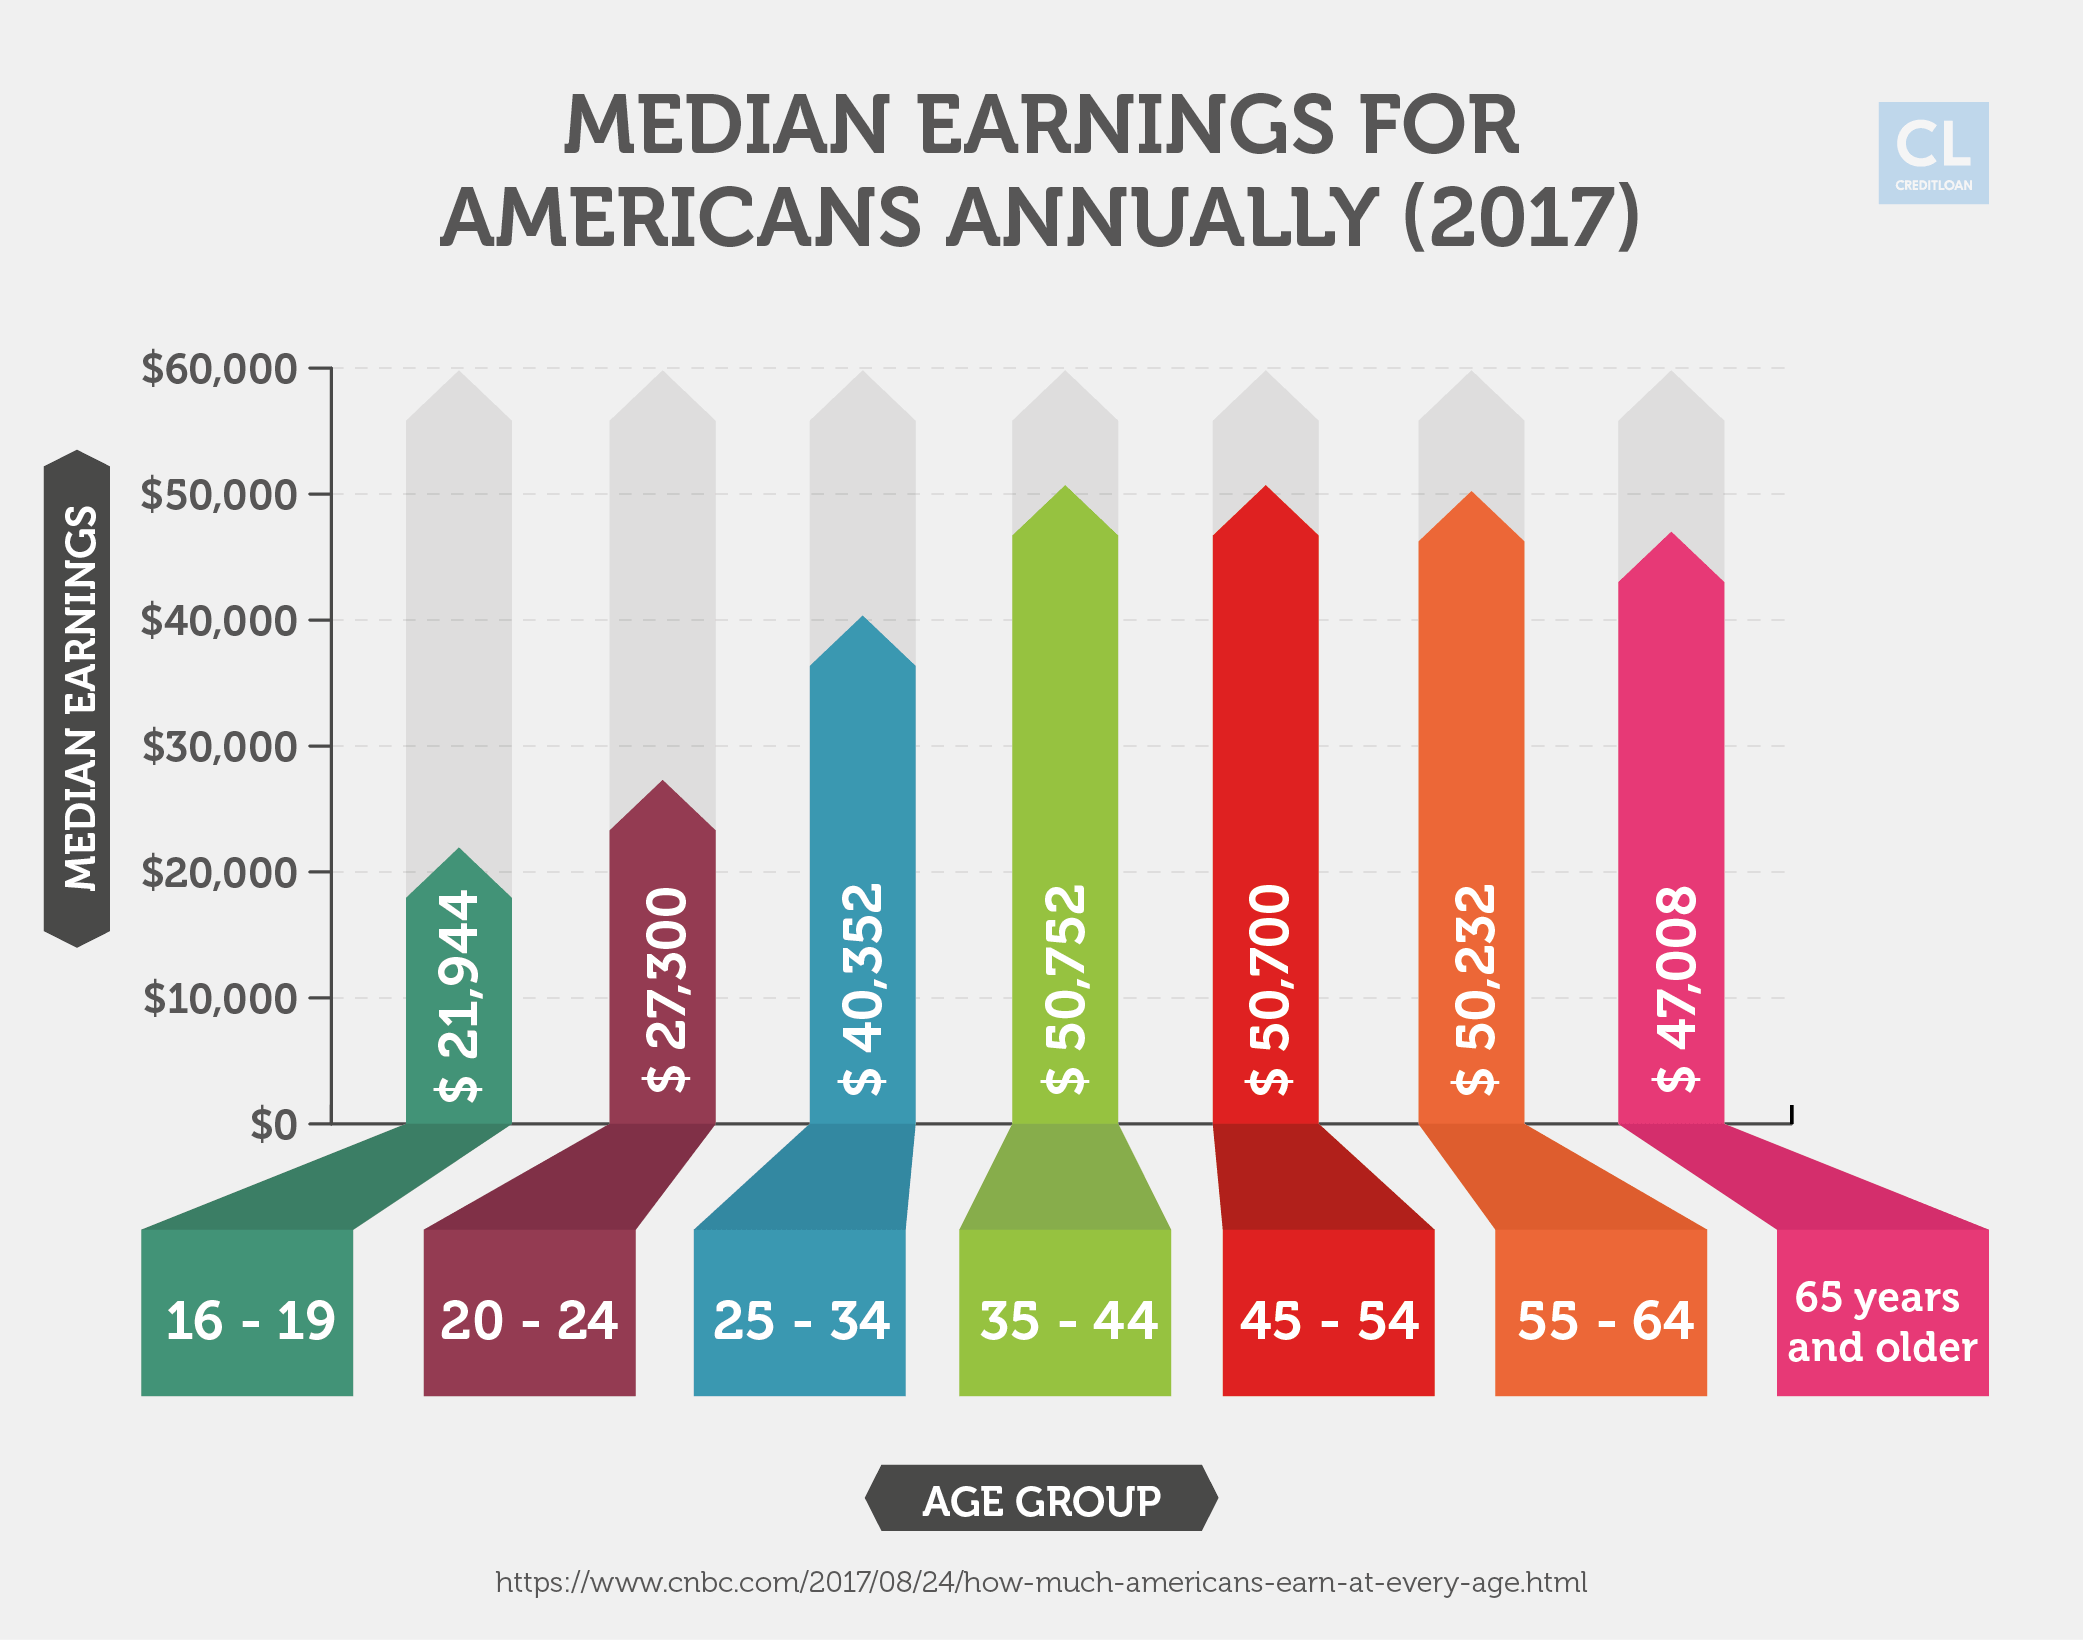 Annual Median Earnings for Americans 2017